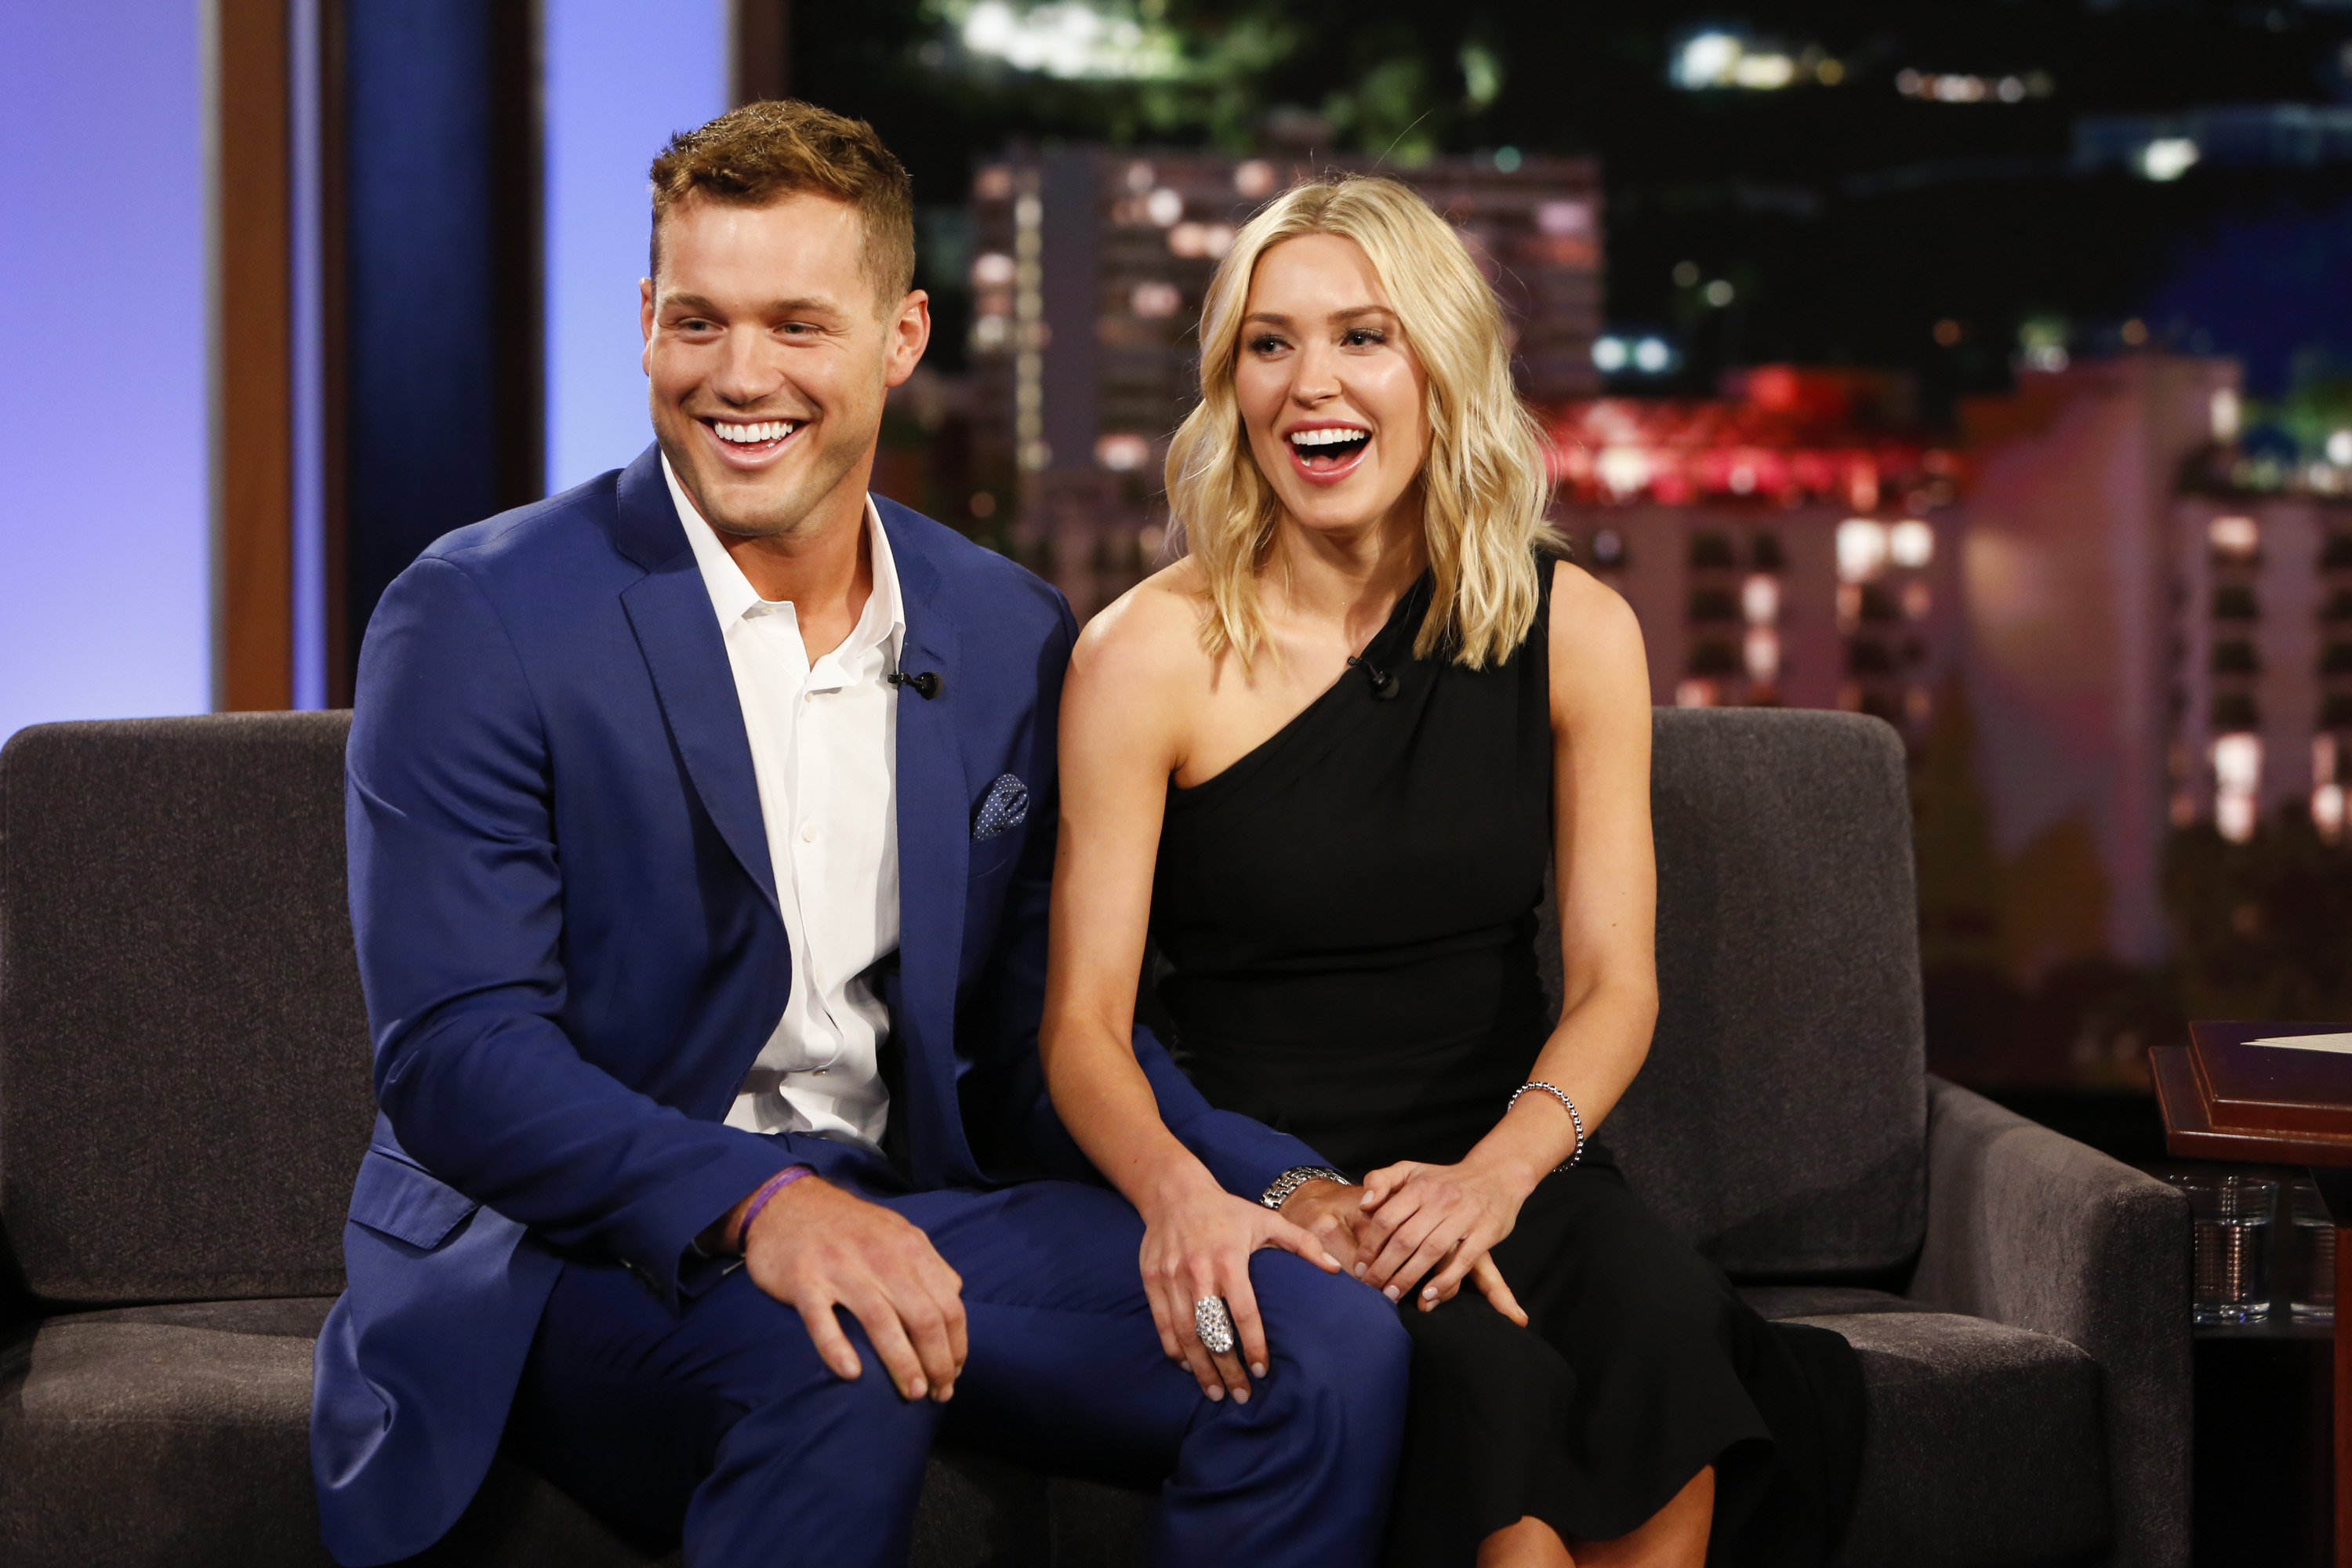 Colton Underwood and Cassie Randolph sitting together on a television stage.